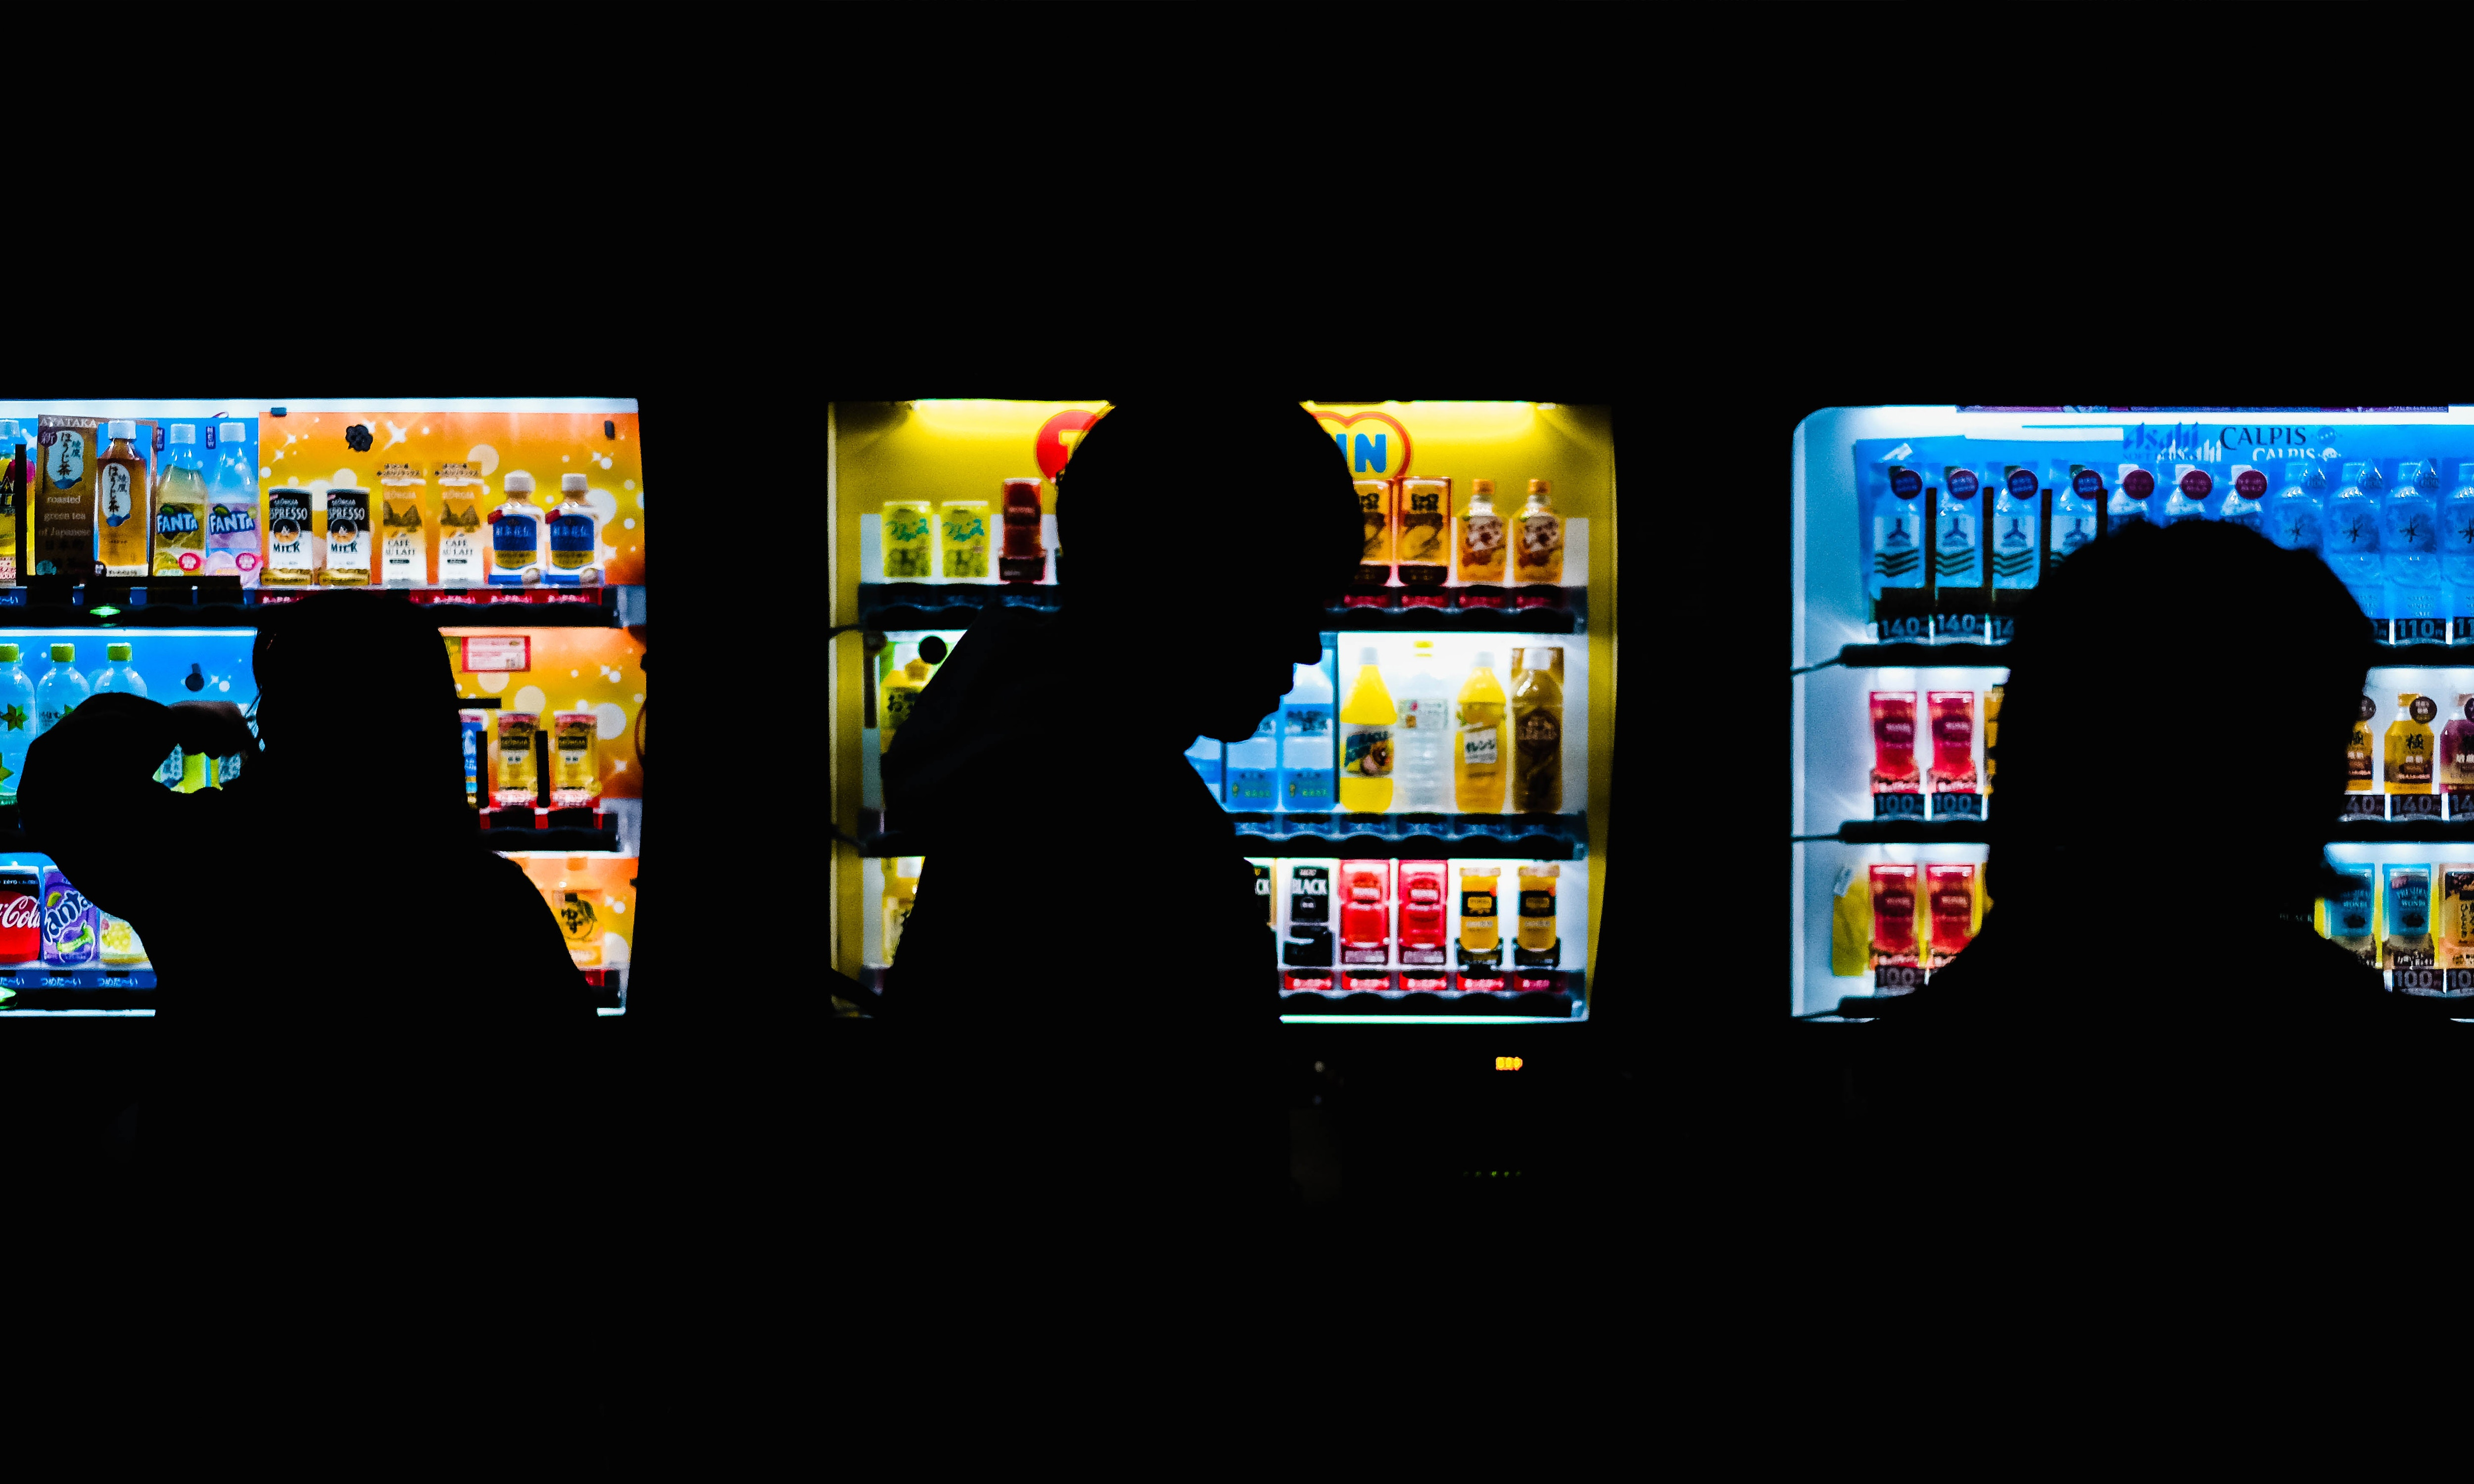 Vending machines are everywhere in Japan and its located at the most convenient places such as train stations.